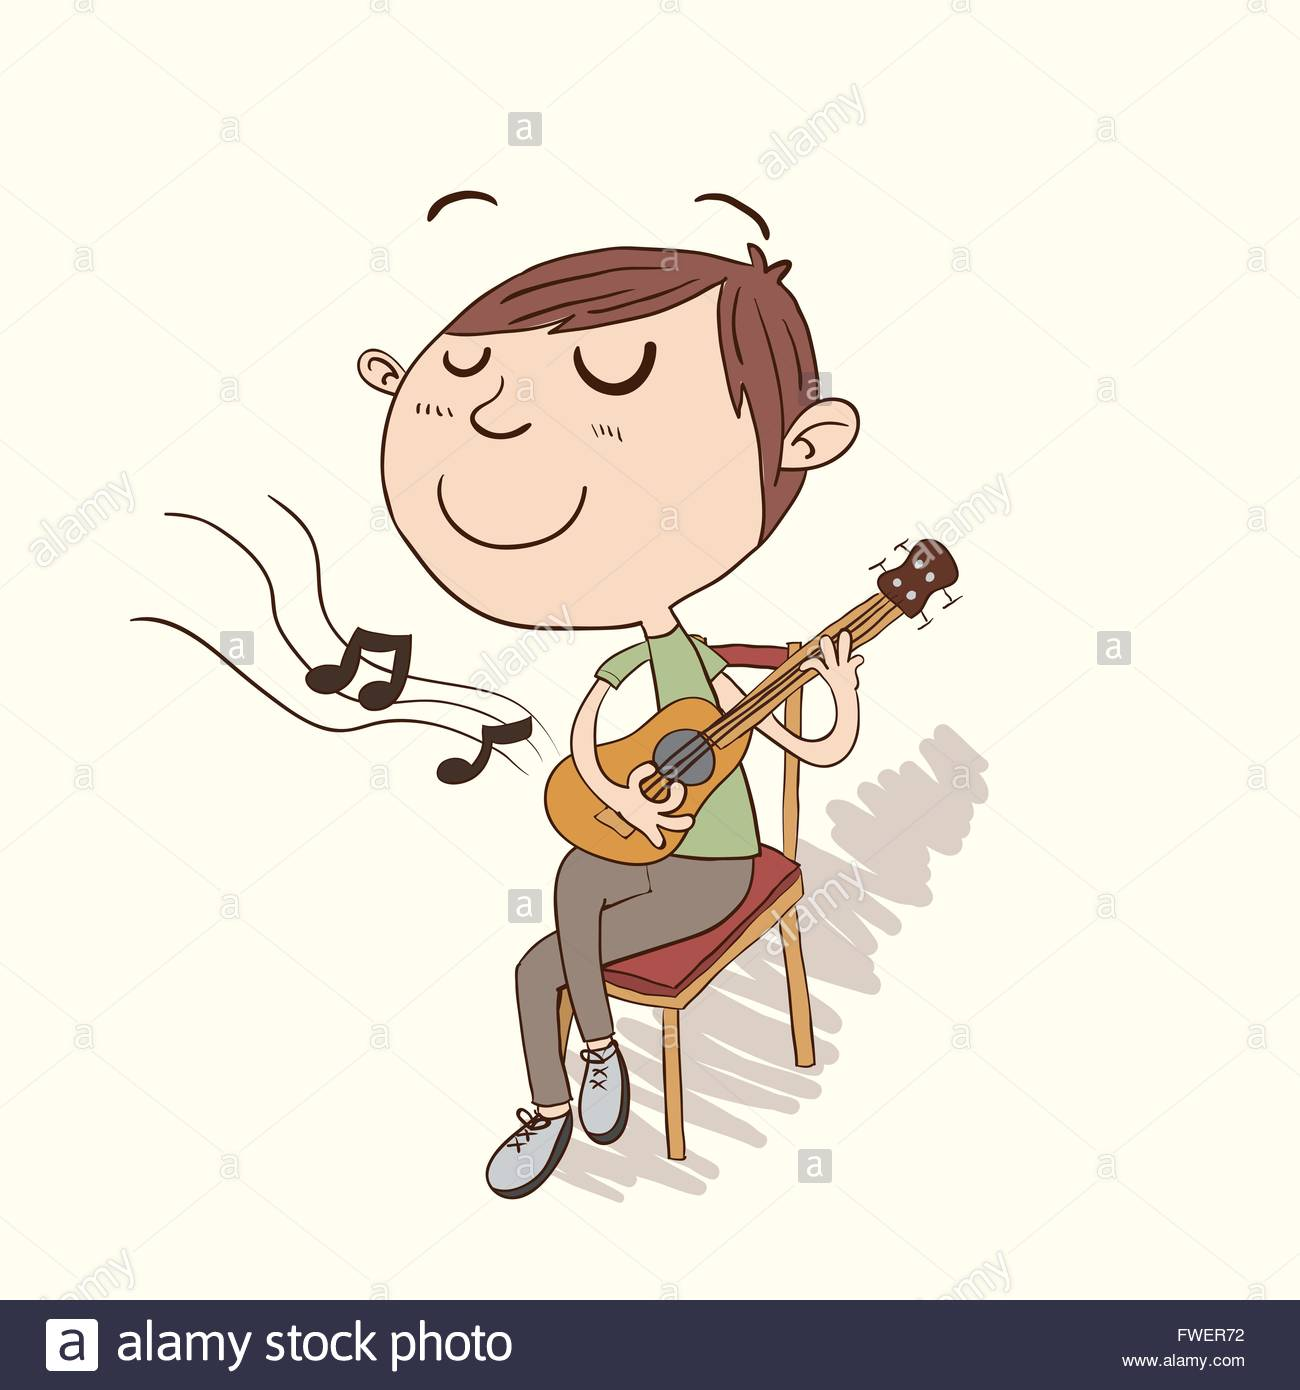 1300x1390 Cartoon Boy Sitting And Playing Guitar In Hand Drawing Style Stock